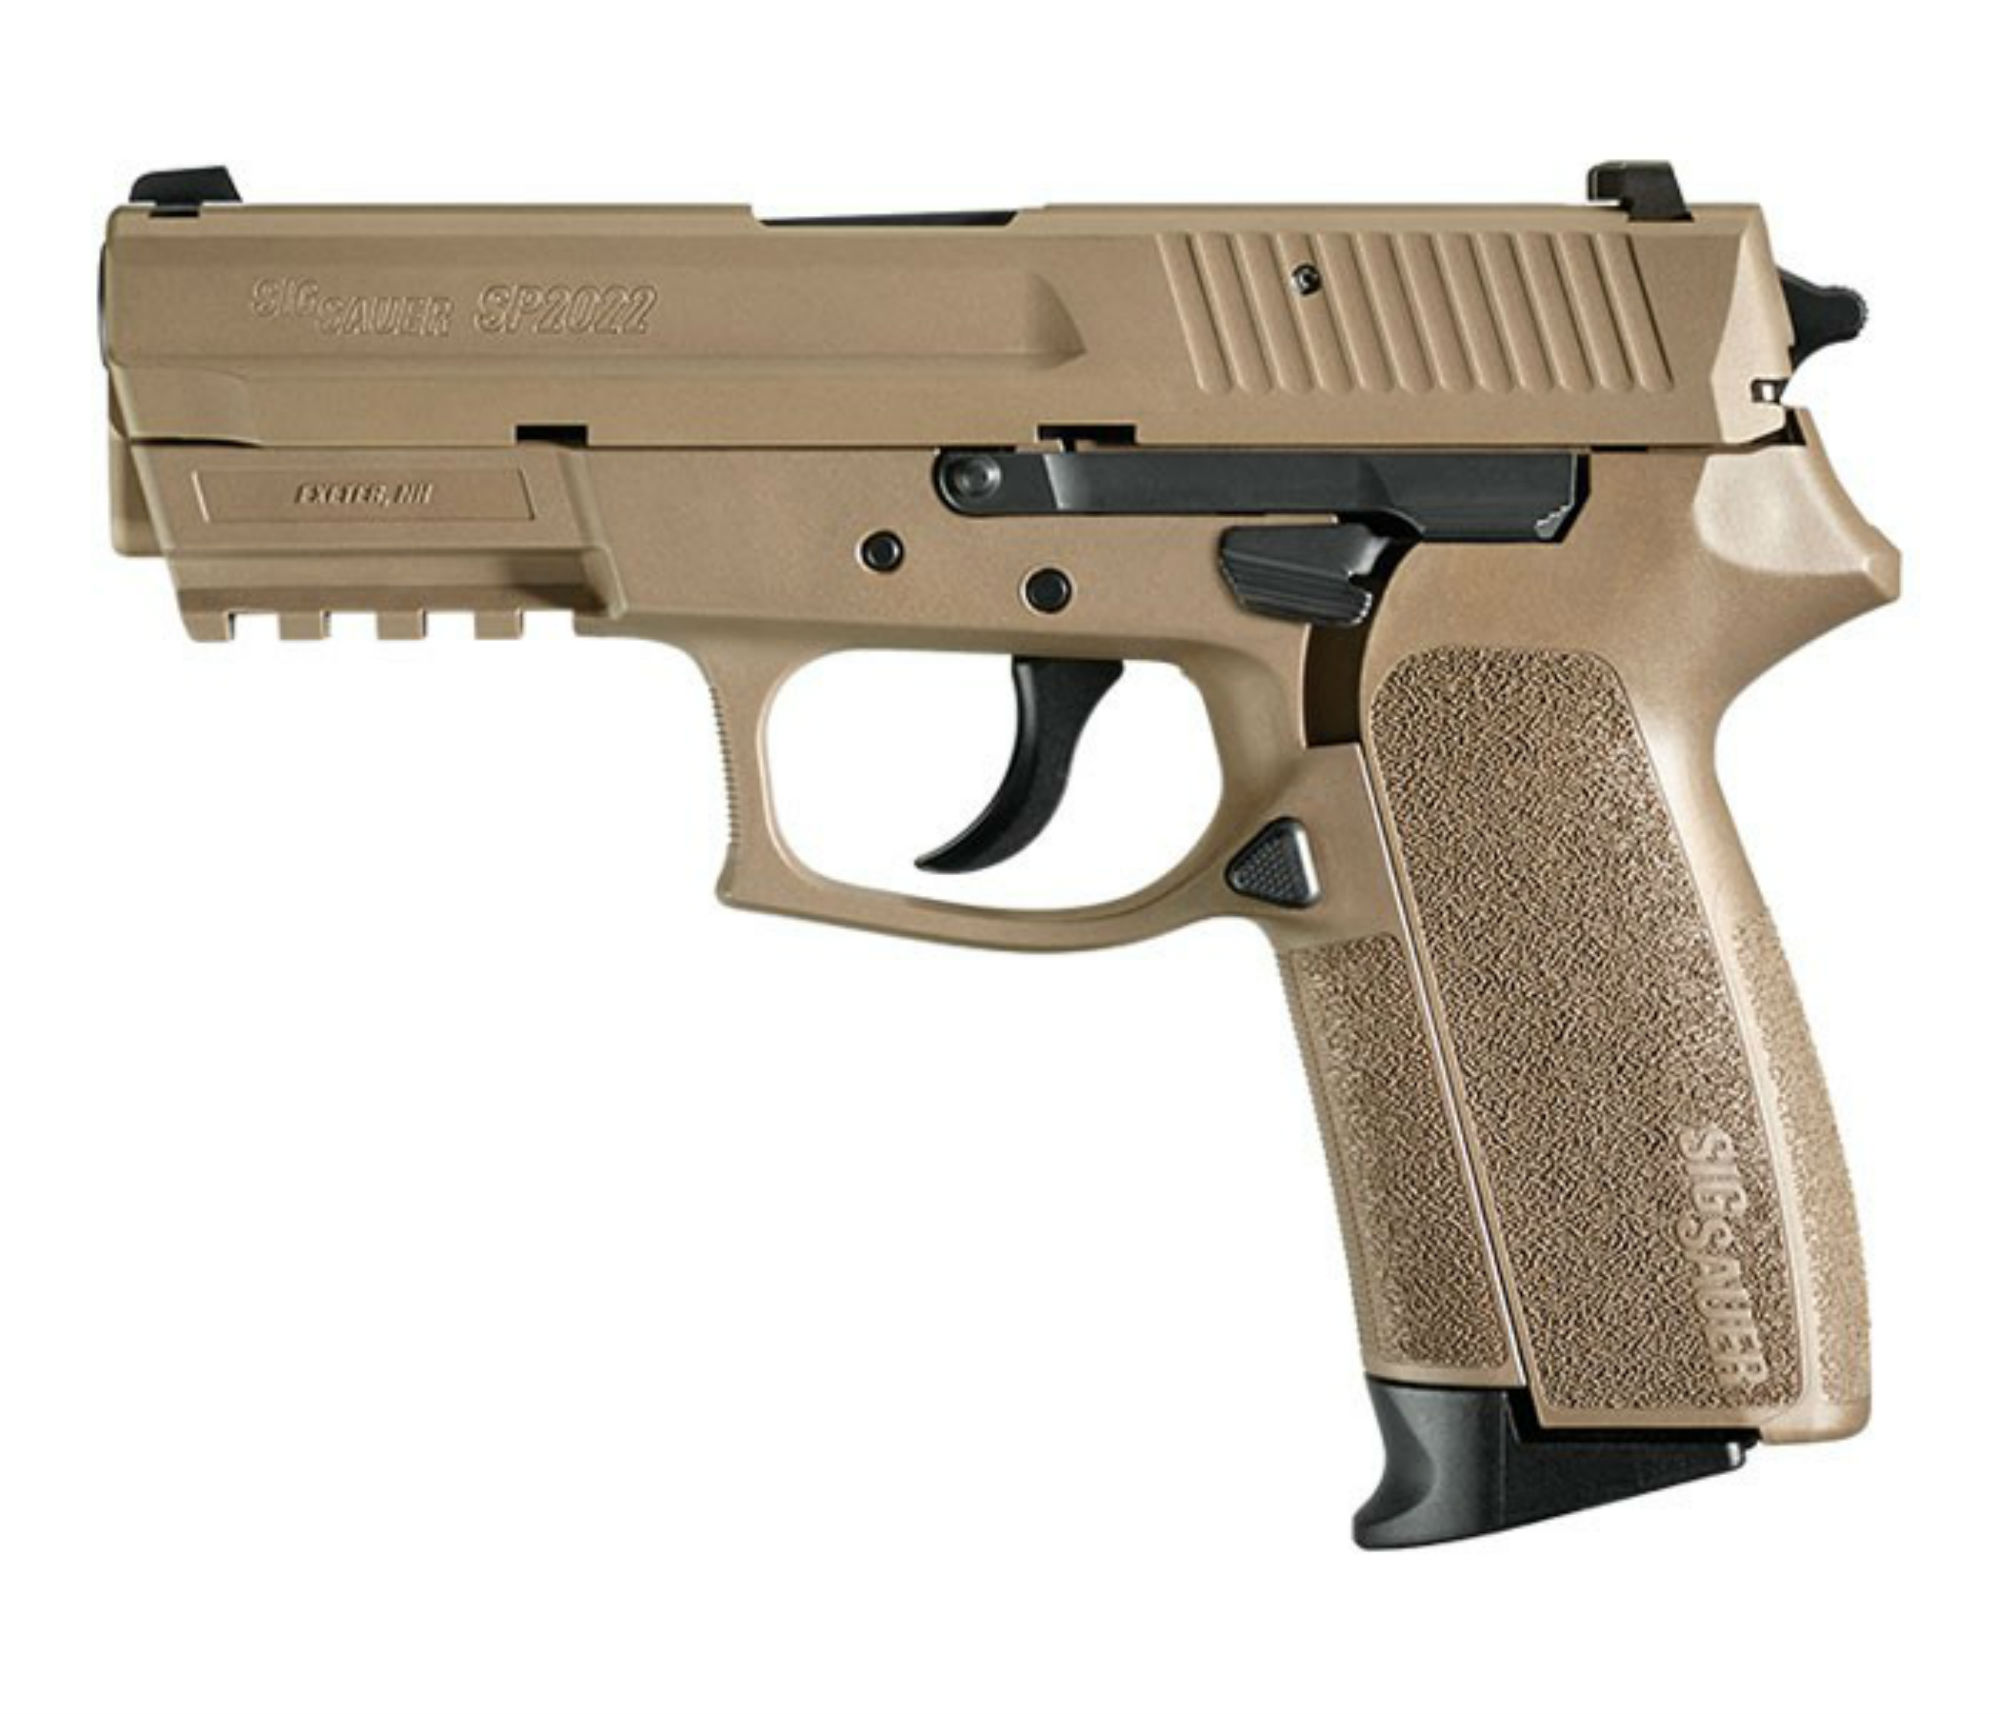 SIG Sauer SP2022 is a polymer frame, full-size pistol.